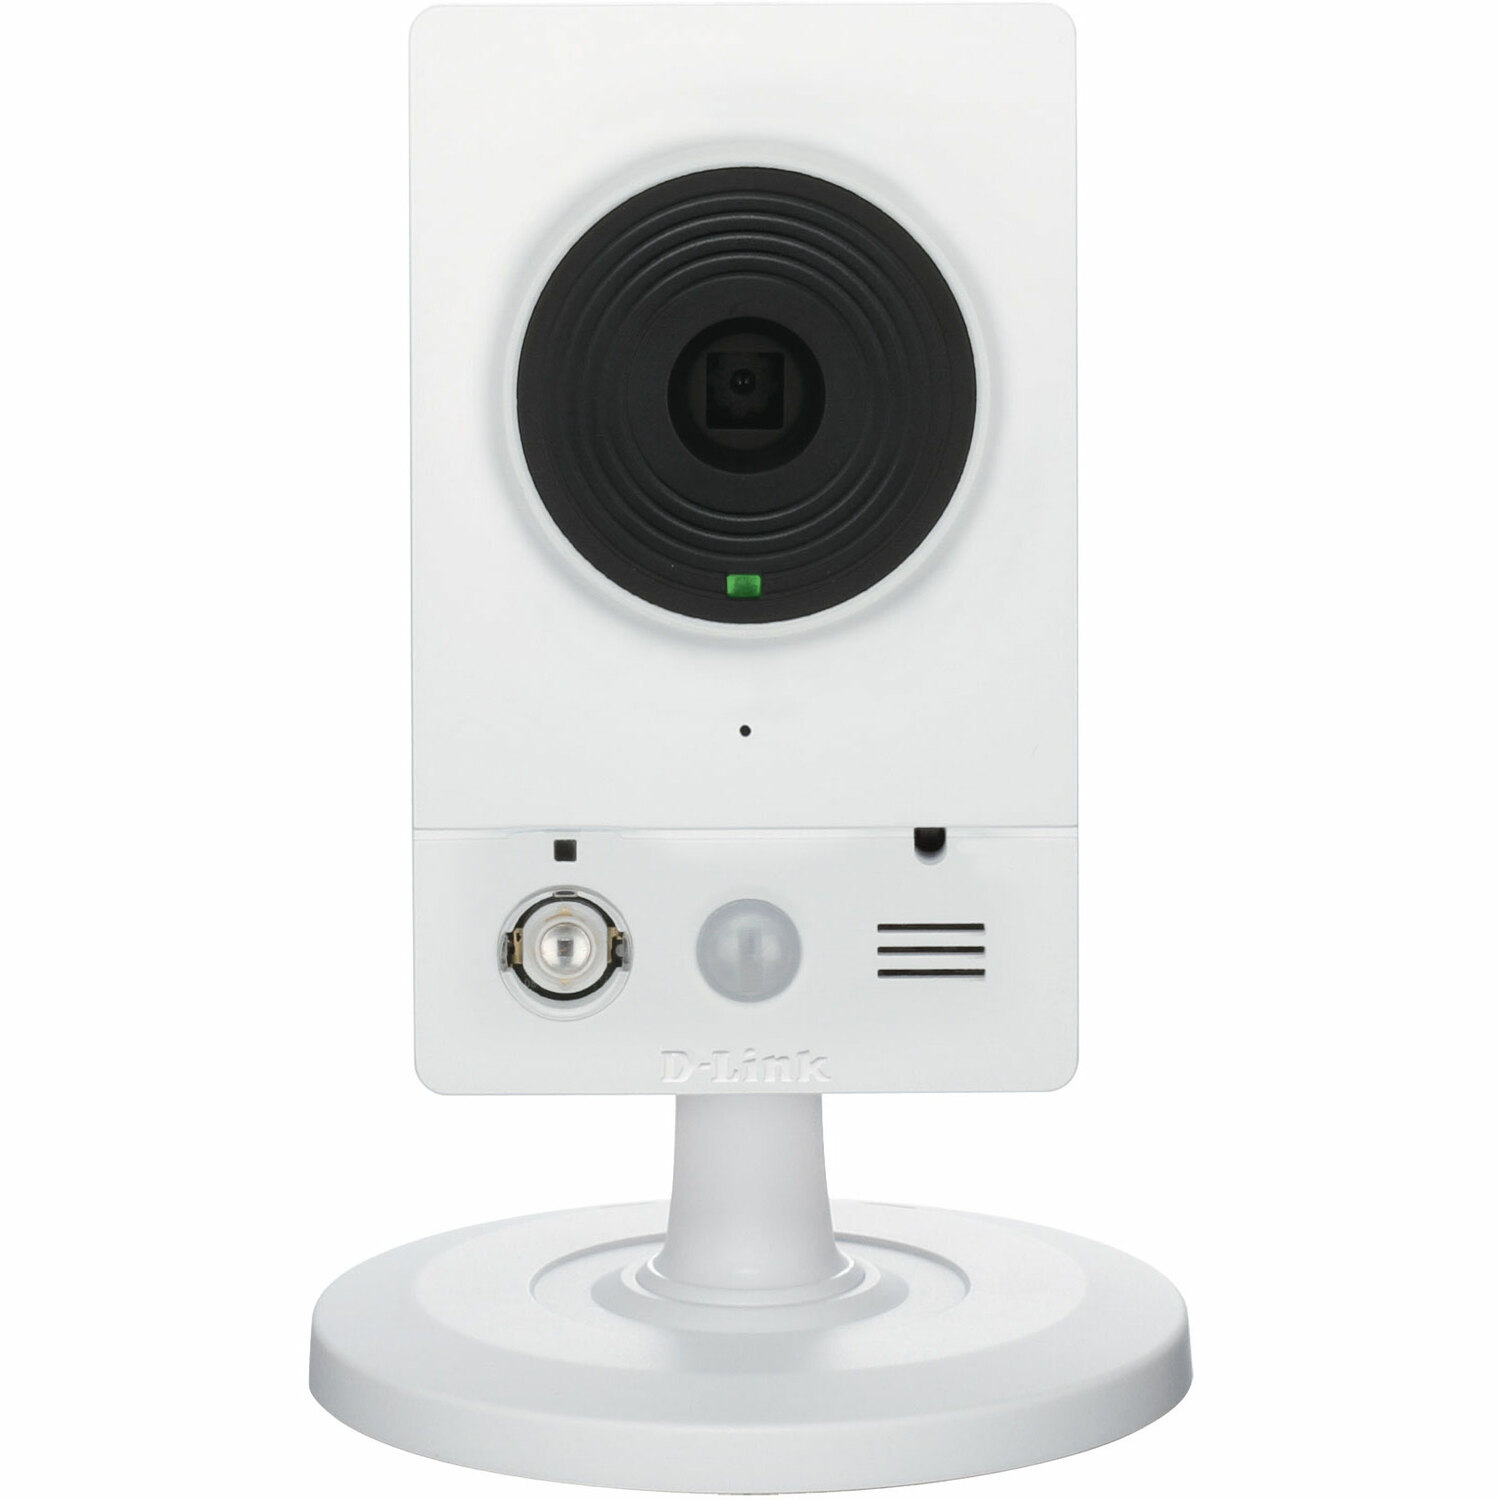 D-Link DCS-2132L Network Camera - Colour